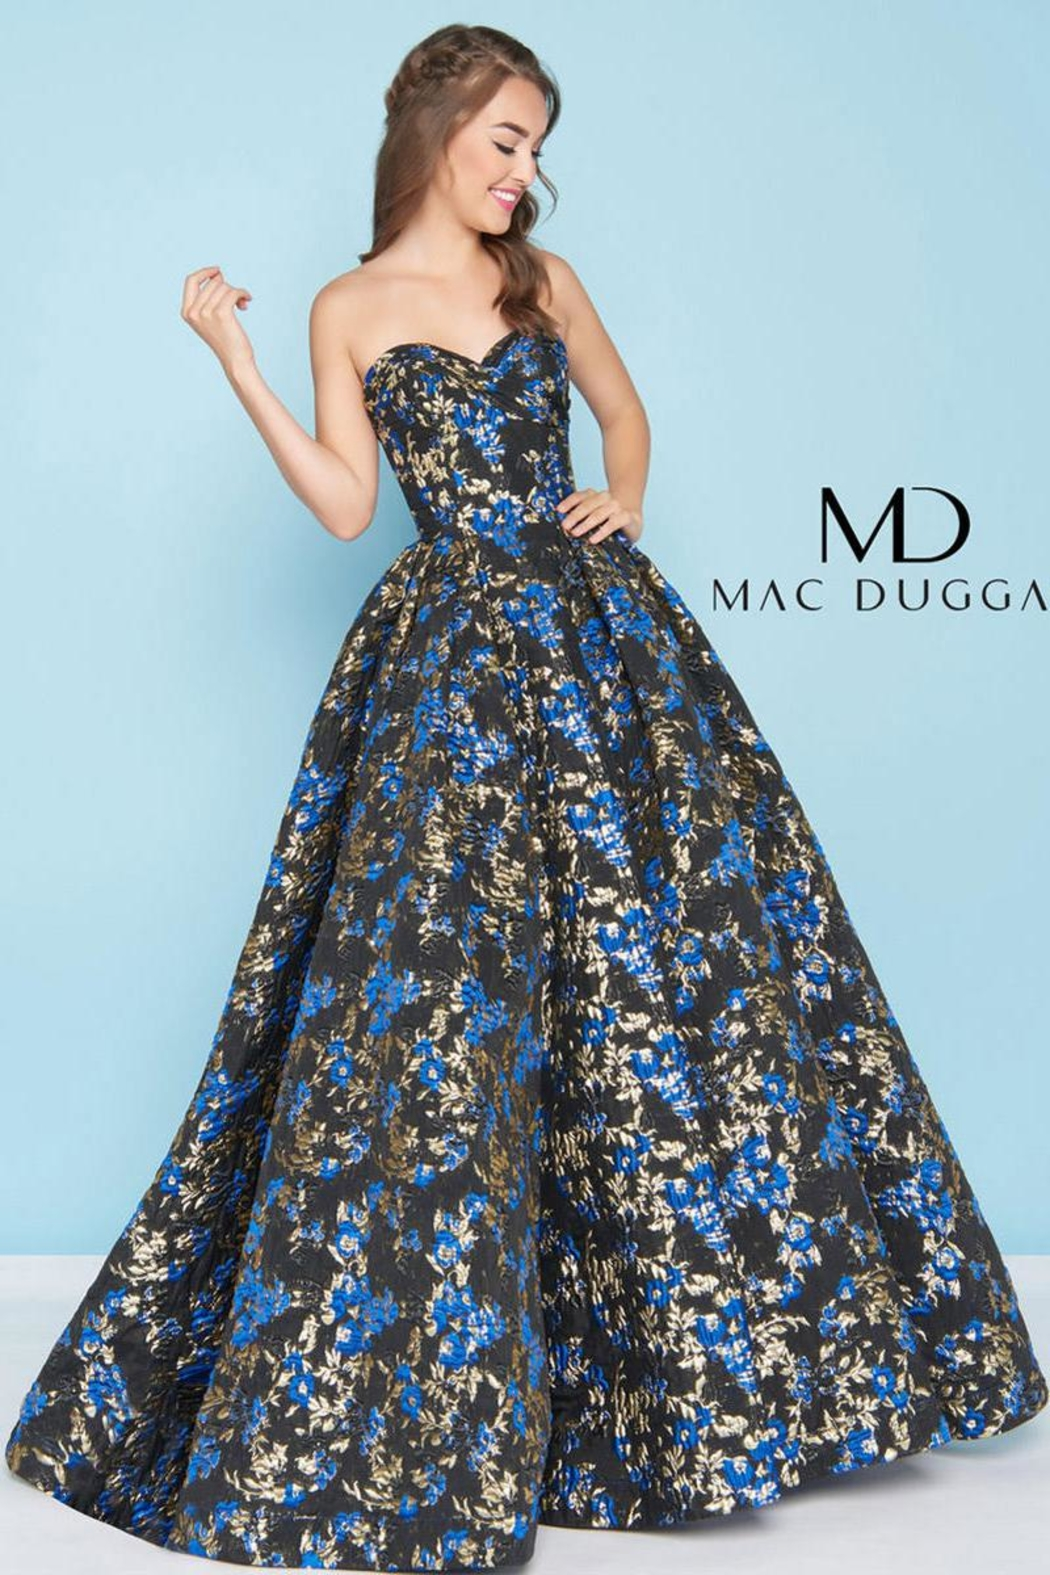 b41a09af89e Mac Duggal Brocade Ball Gown from Wallingford by The Dressing Room ...